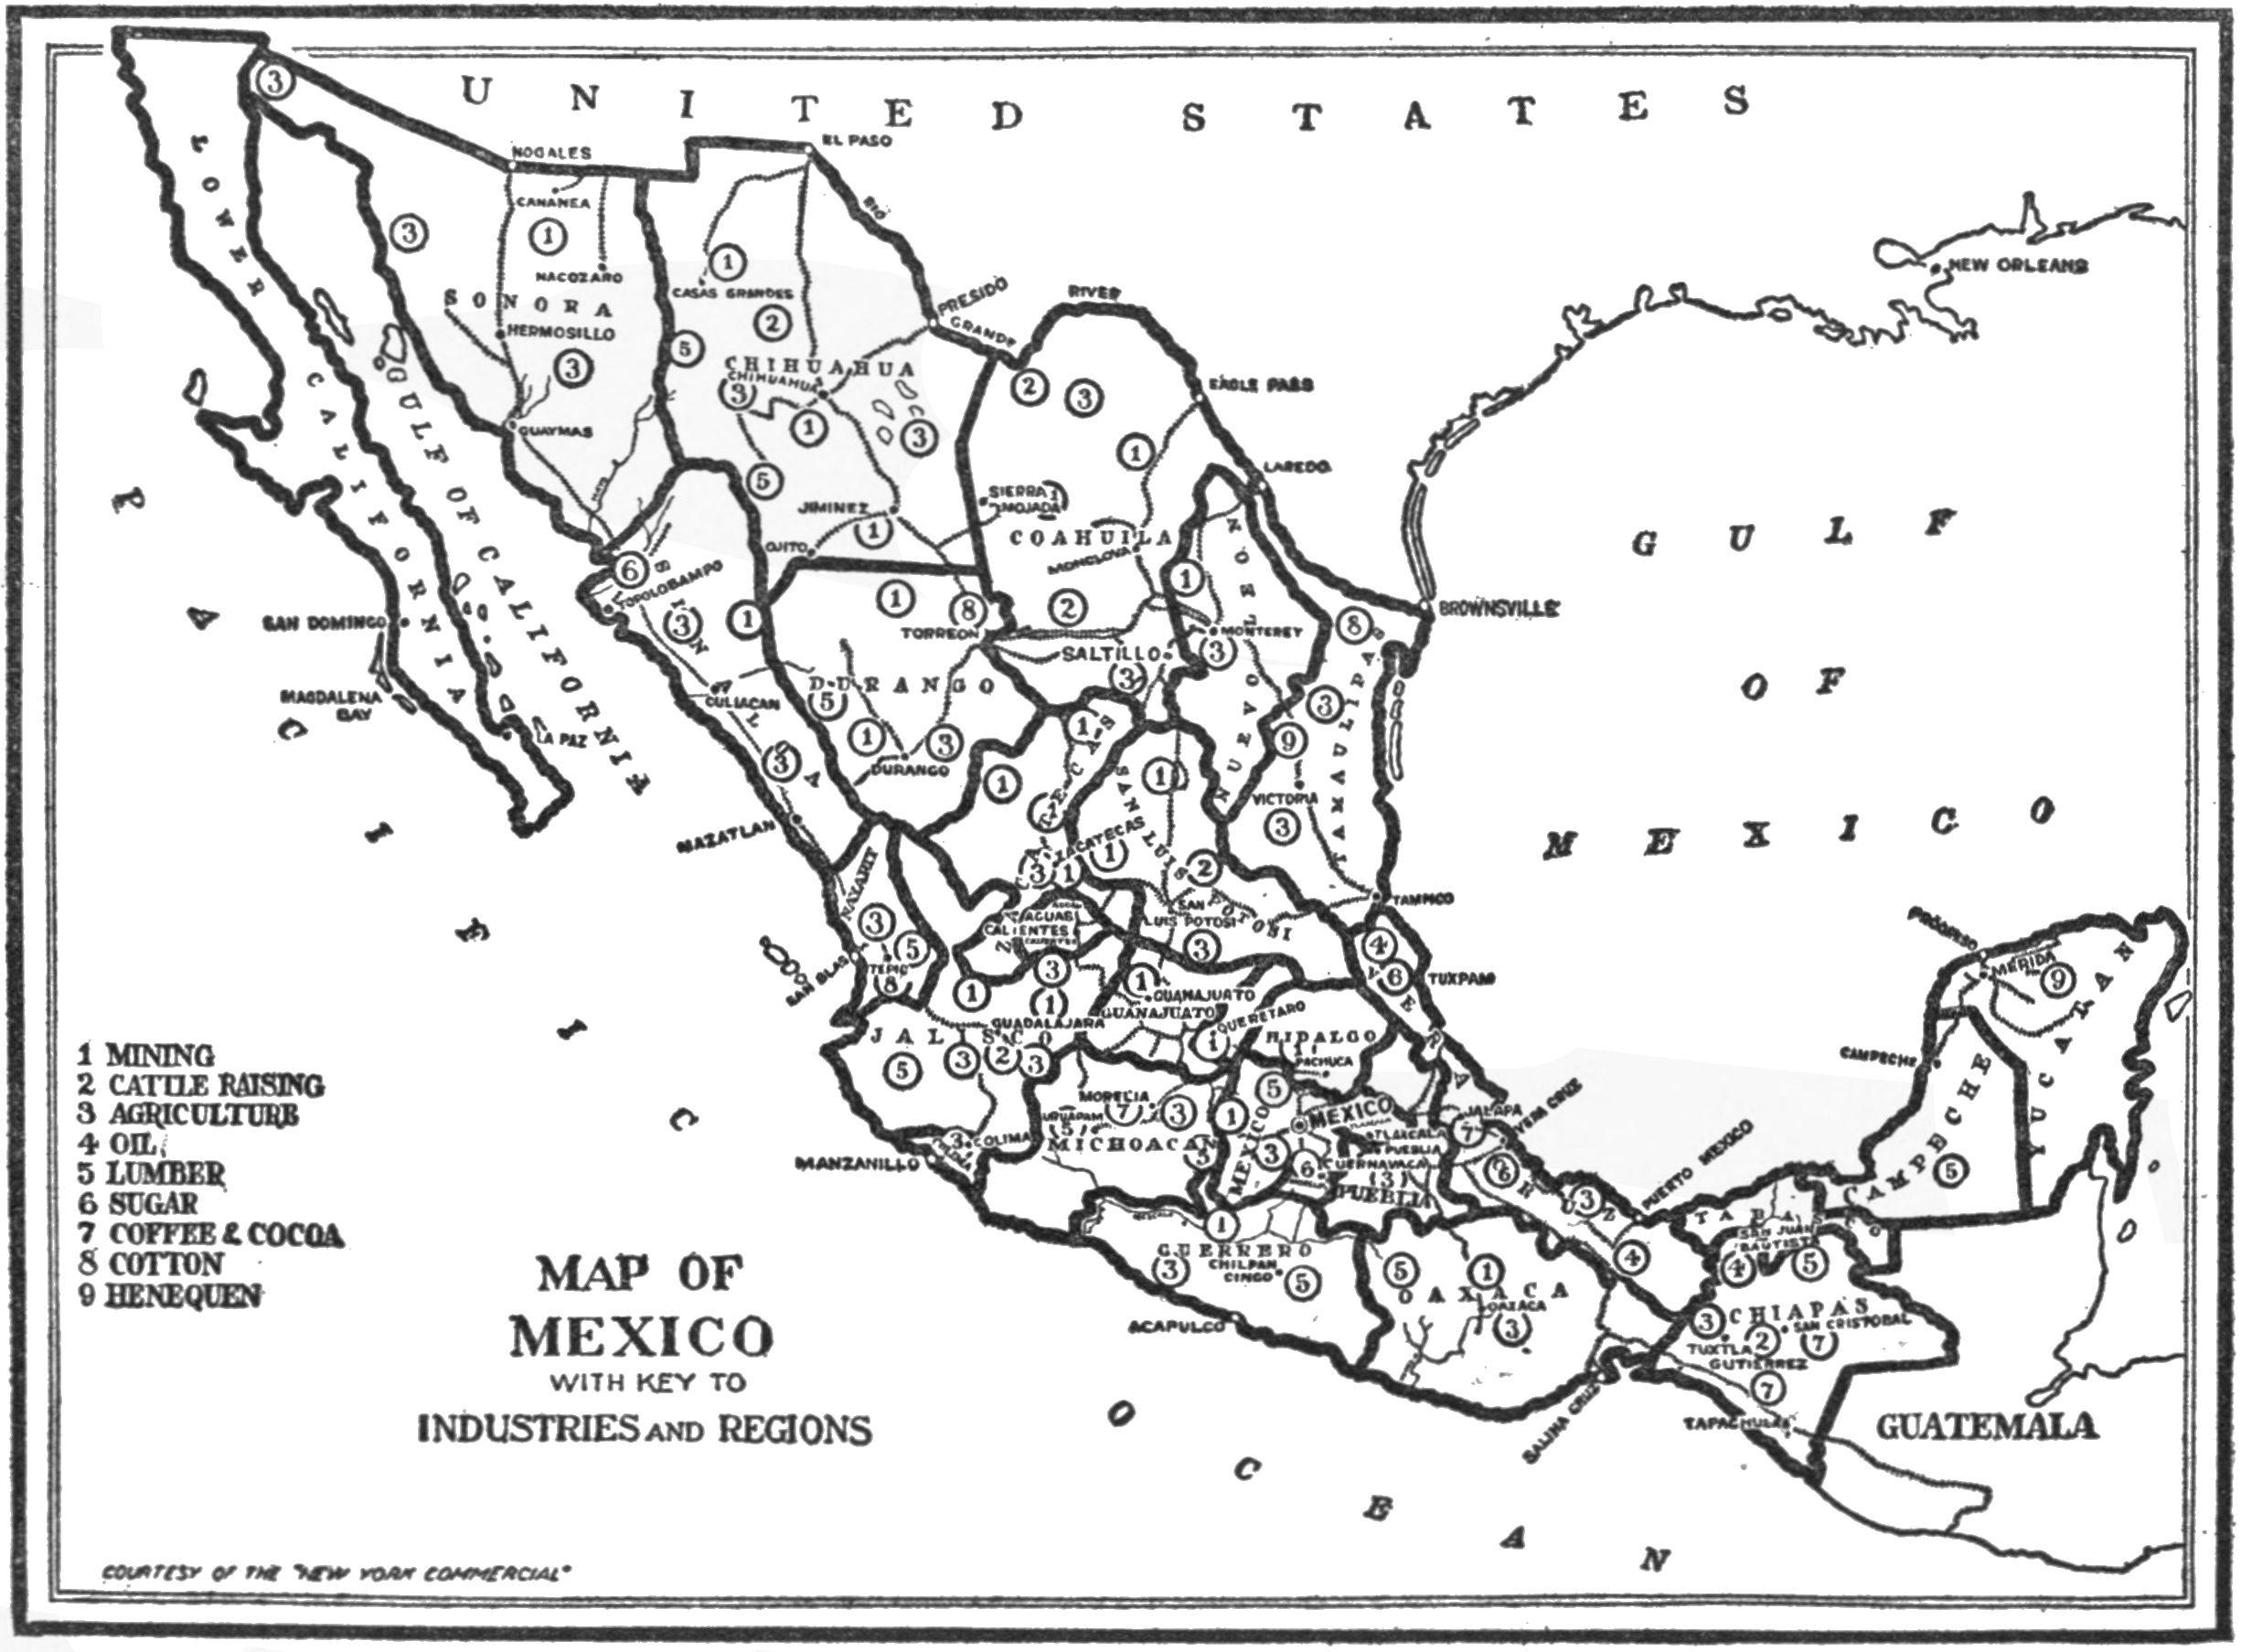 MAIR D008 Economic map of Mexico 1921.jpg